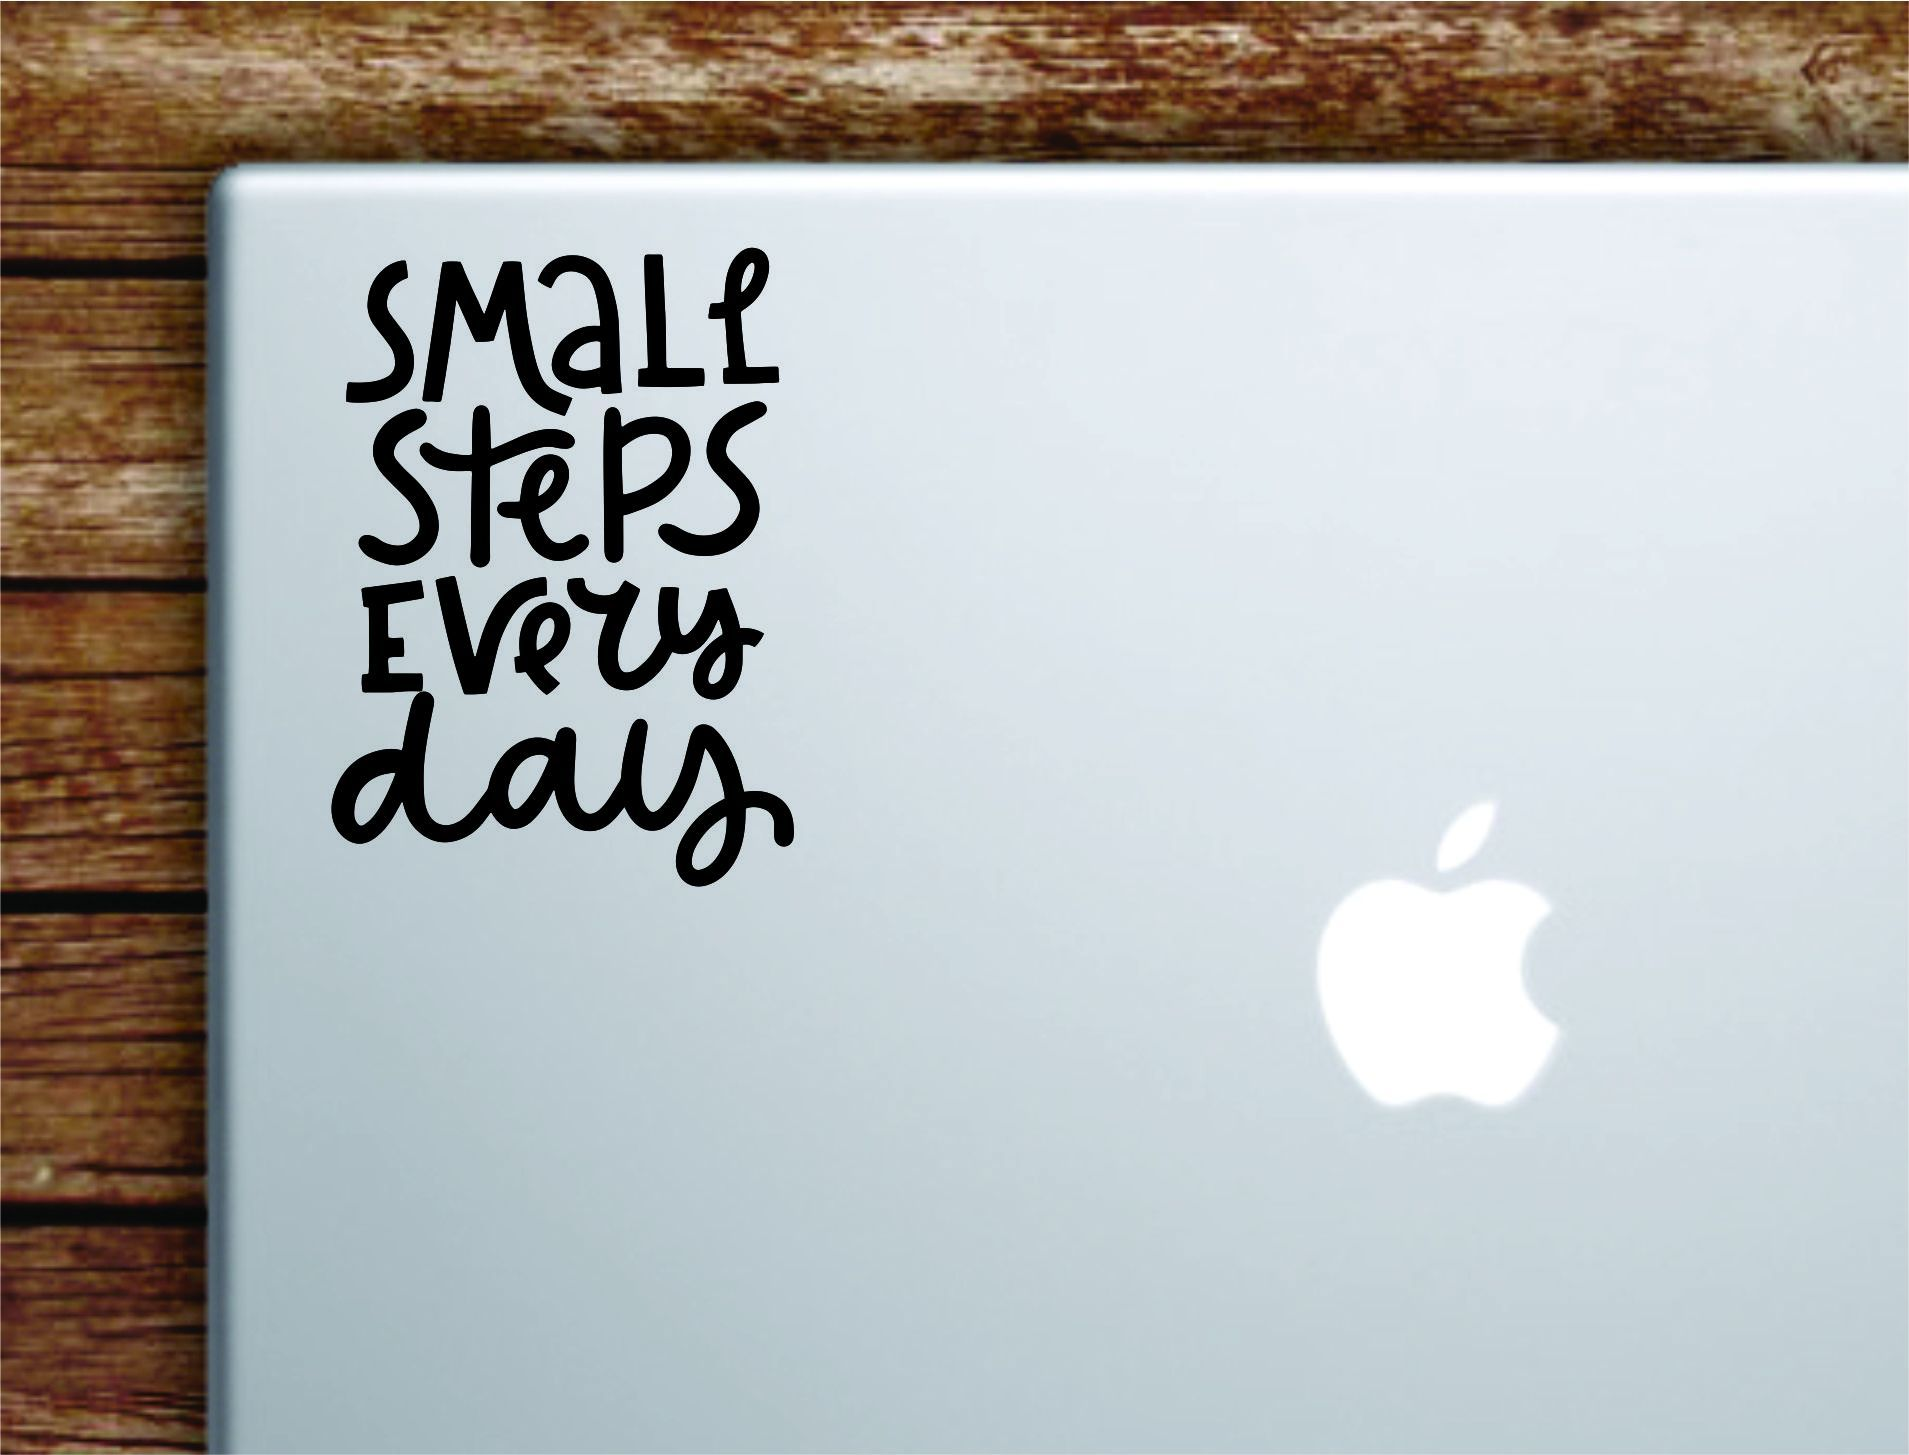 Small Steps Every Day V2 Laptop Wall Decal Sticker Vinyl Art Quote Macbook Apple Decor Car Window Truck Kids Baby Teen Inspirational Girls Gym Health Sports School - olympic blue